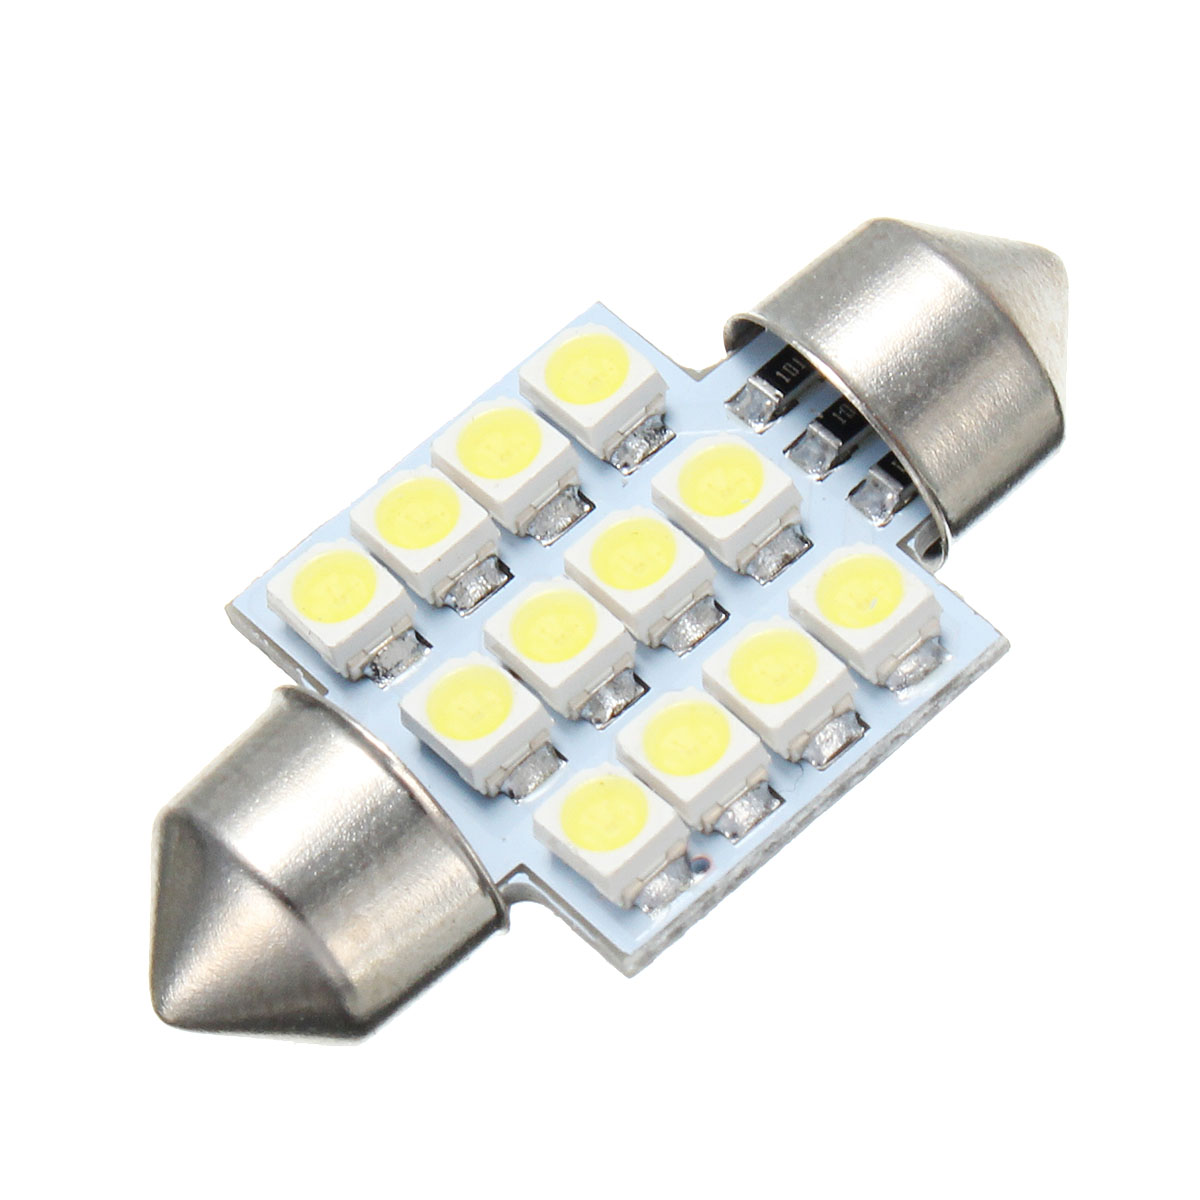 17pcs white car interior led light kit dome light map lamp with tool 17pcs white car interior led light kit dome light map lamp with tool for volvo v70 xc70 02 07 in signal lamp from automobiles motorcycles on arubaitofo Gallery